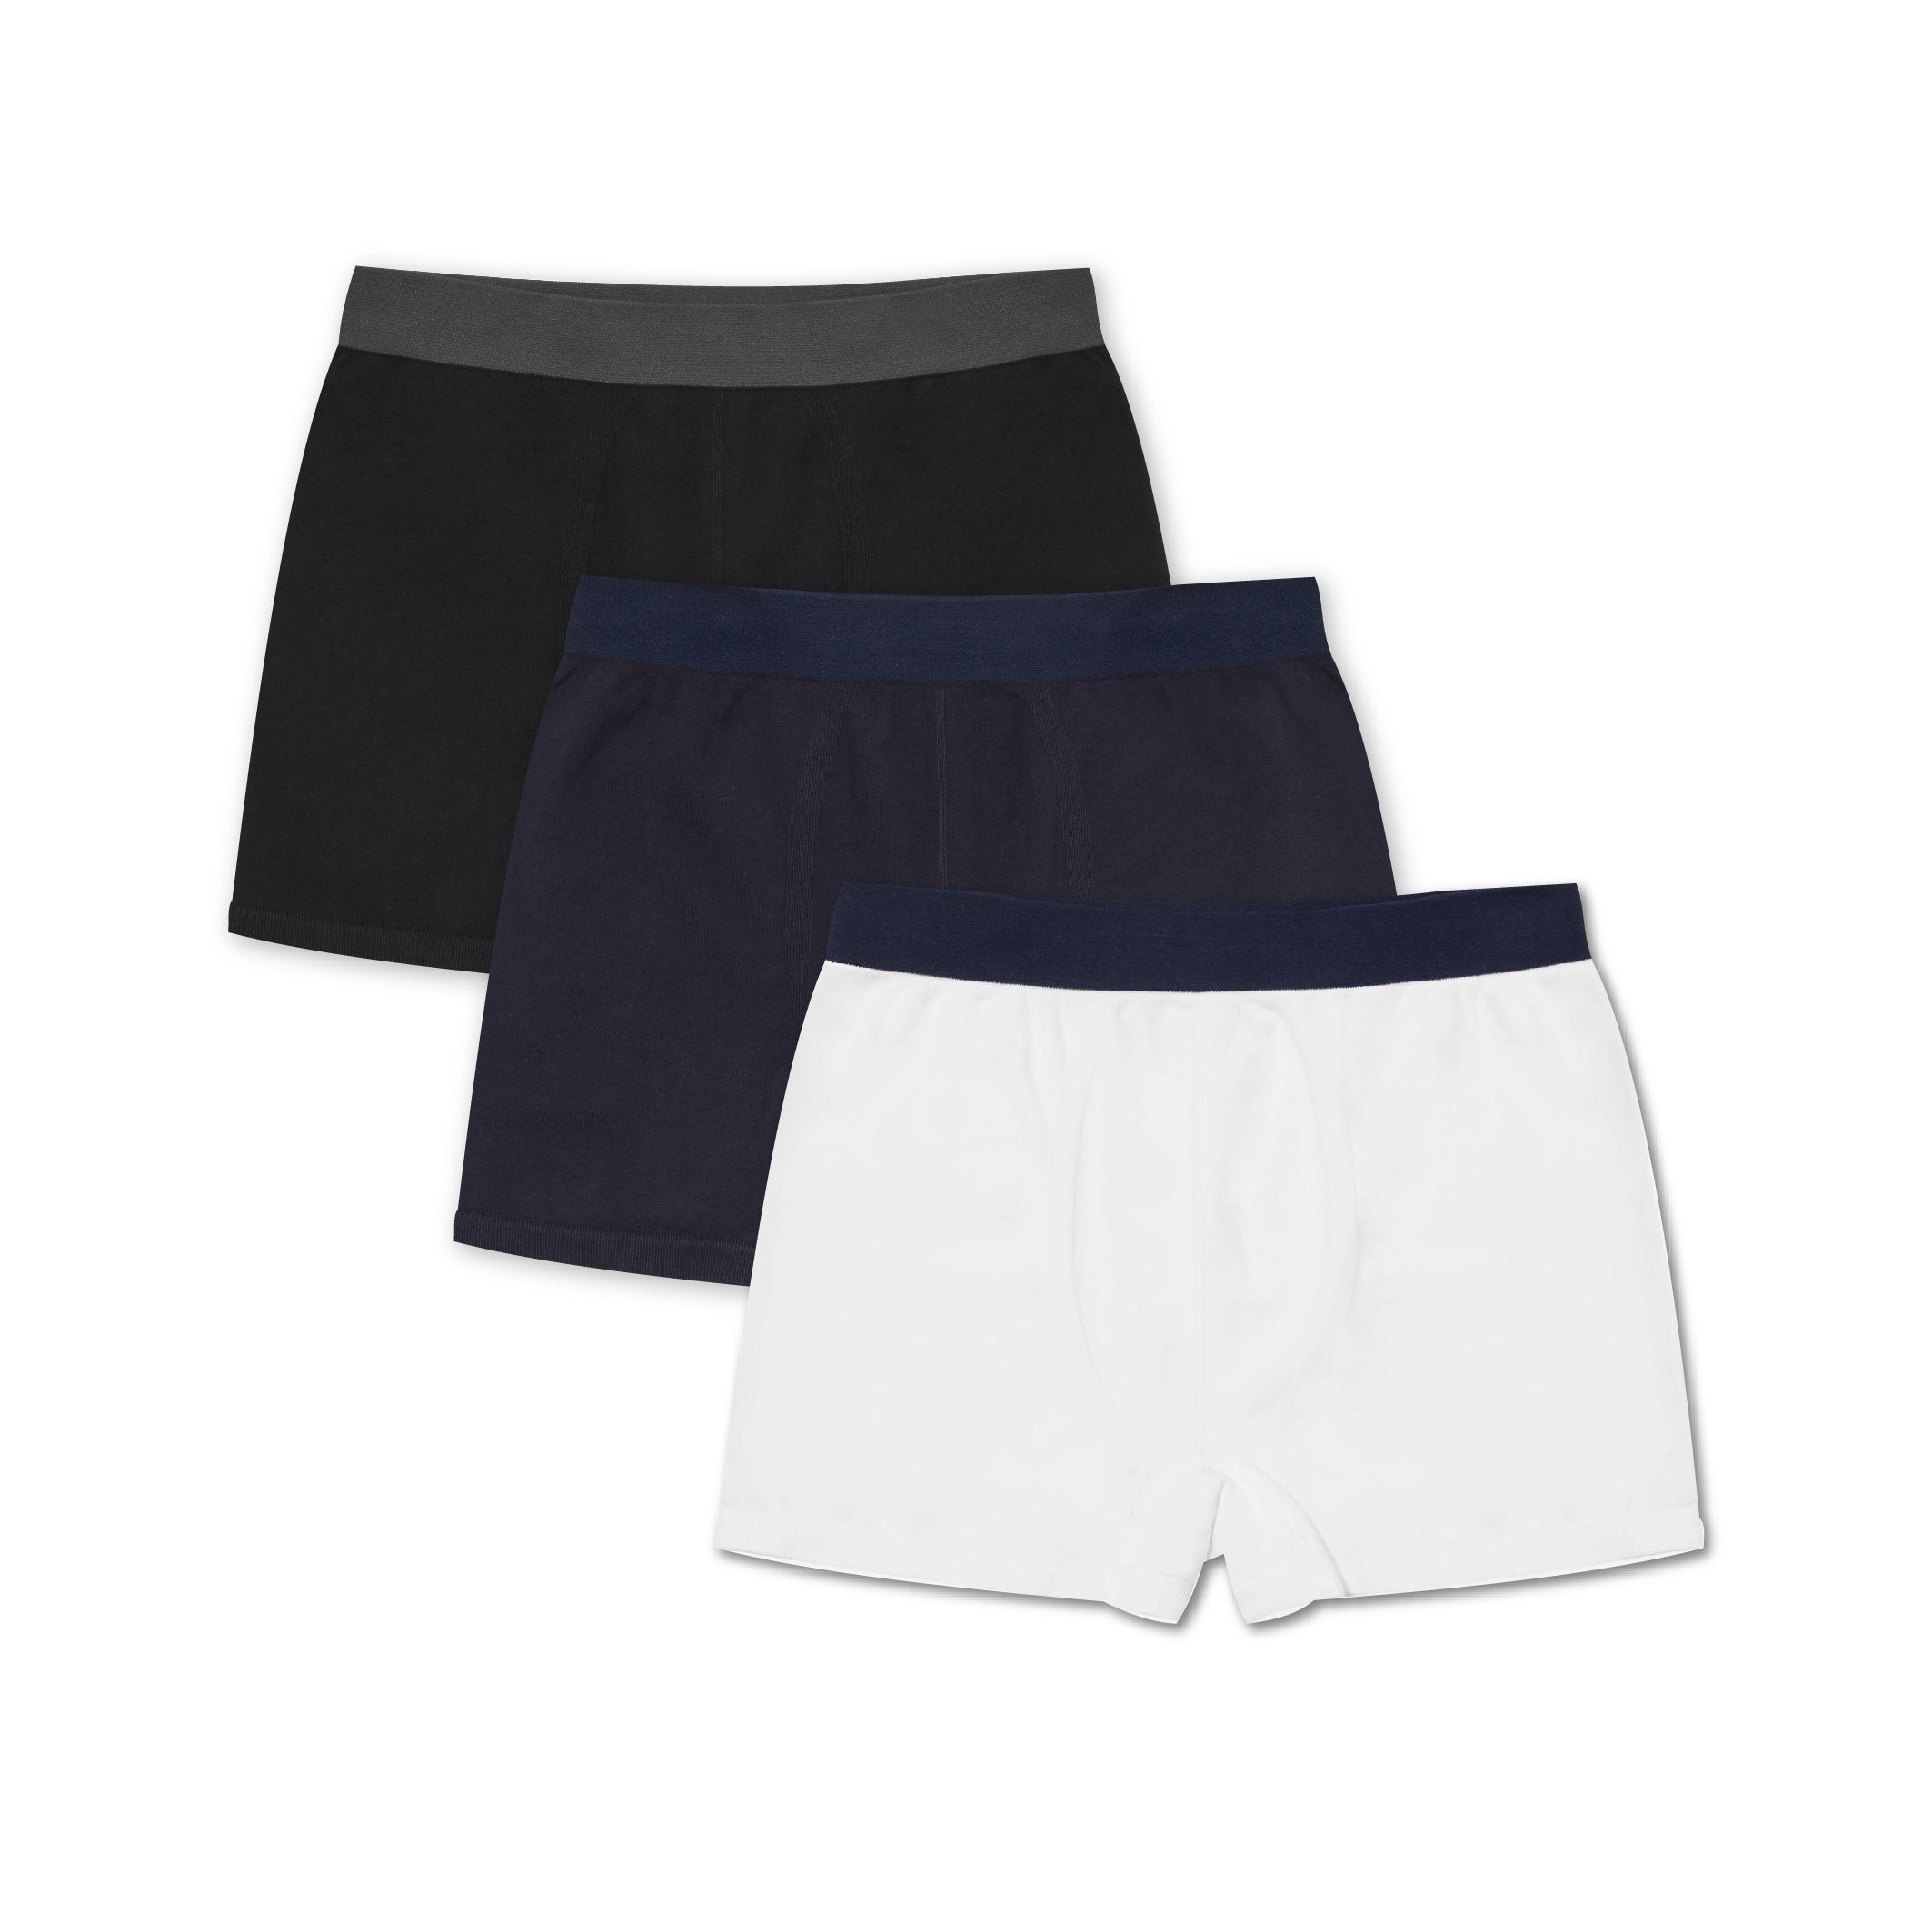 3 Pack Trunk Mix - Navy, White, Black - Hamilton and Hare Ltd